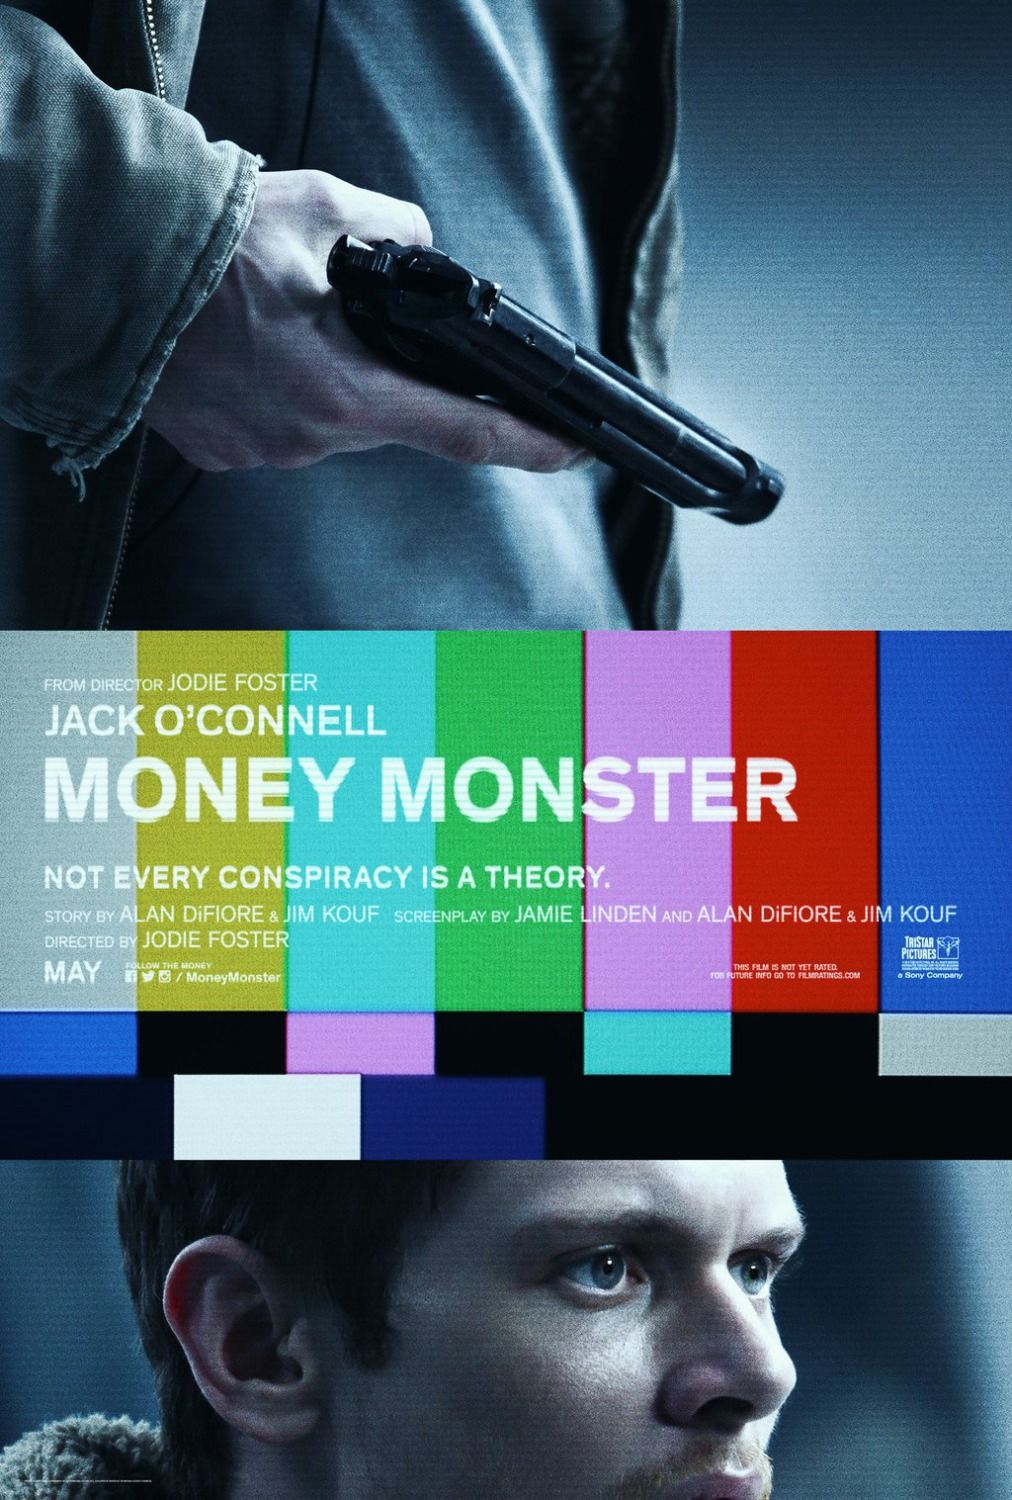 money monster character poster jack o connell cinema poster welcome online putlocker movie watch money monster full movie online for drama lee gates is a bombastic tv personality whose popular financial